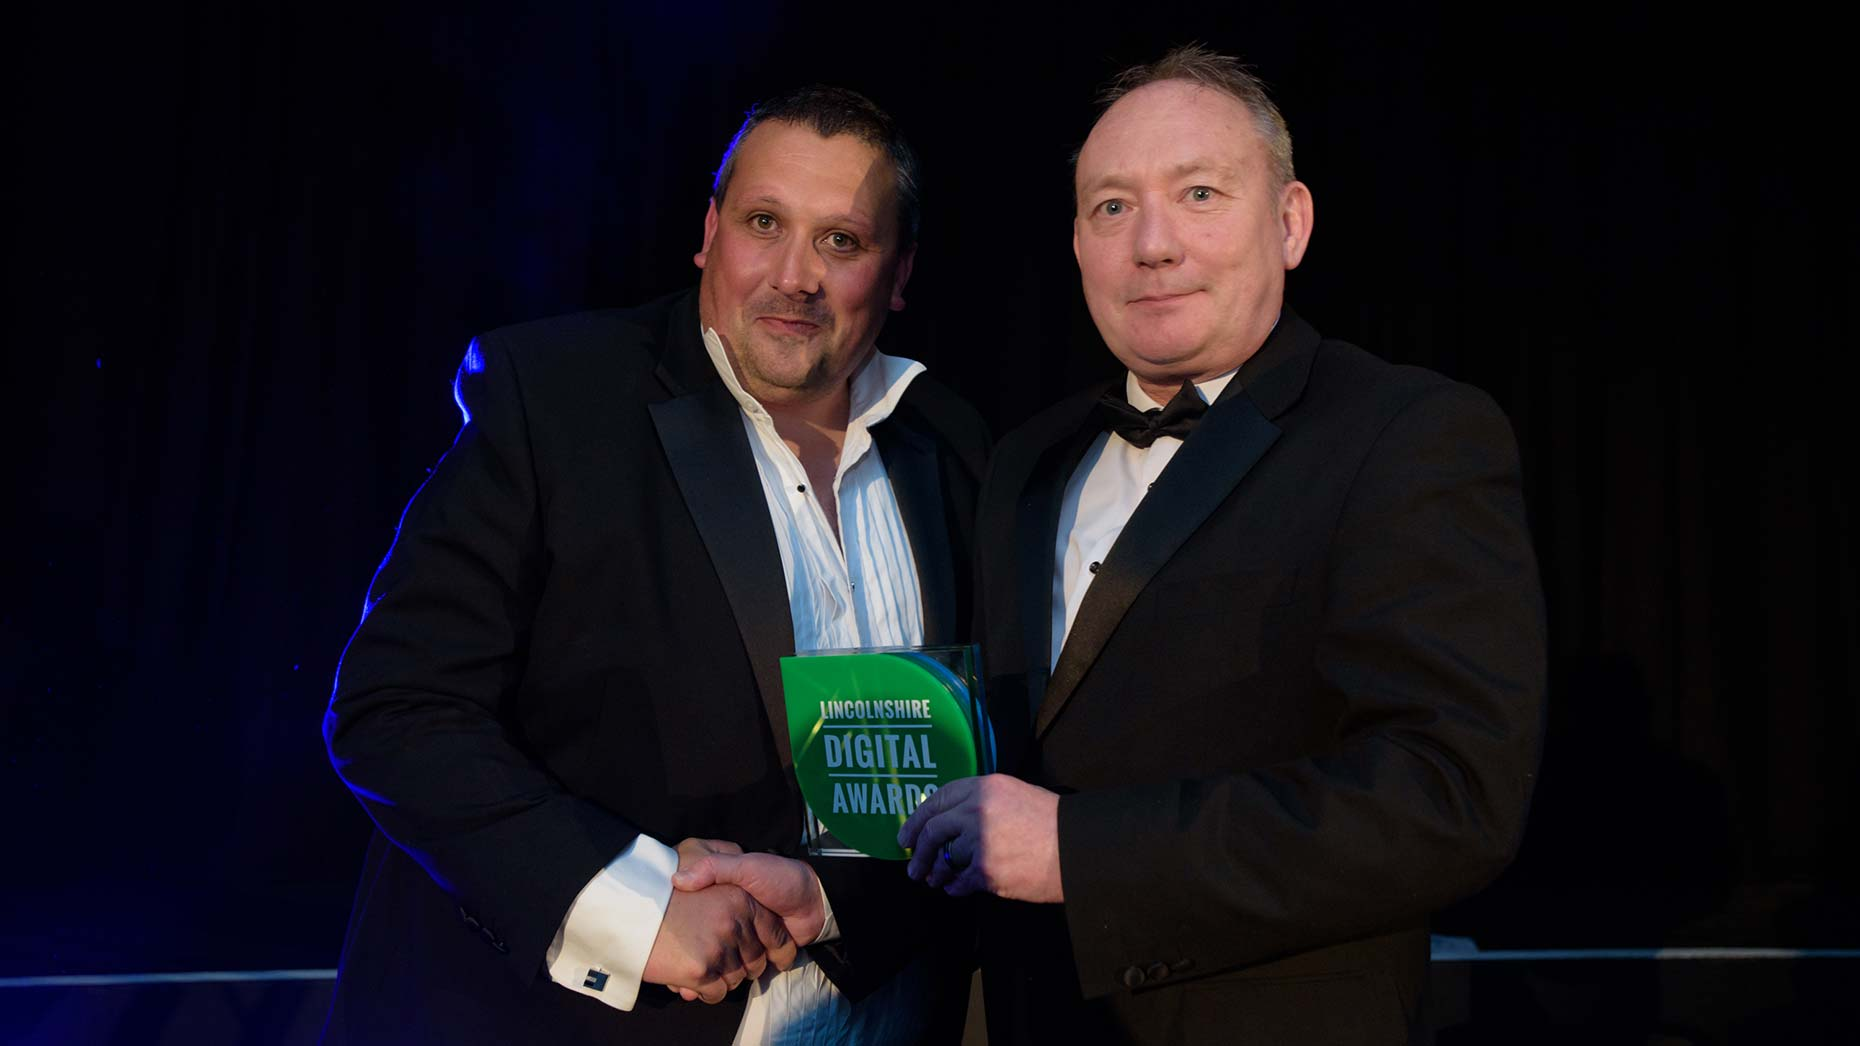 Software Europe CEO Neil Everatt presented the award for Best Digital Entrepreneur to Andrew Wood from Kal Group